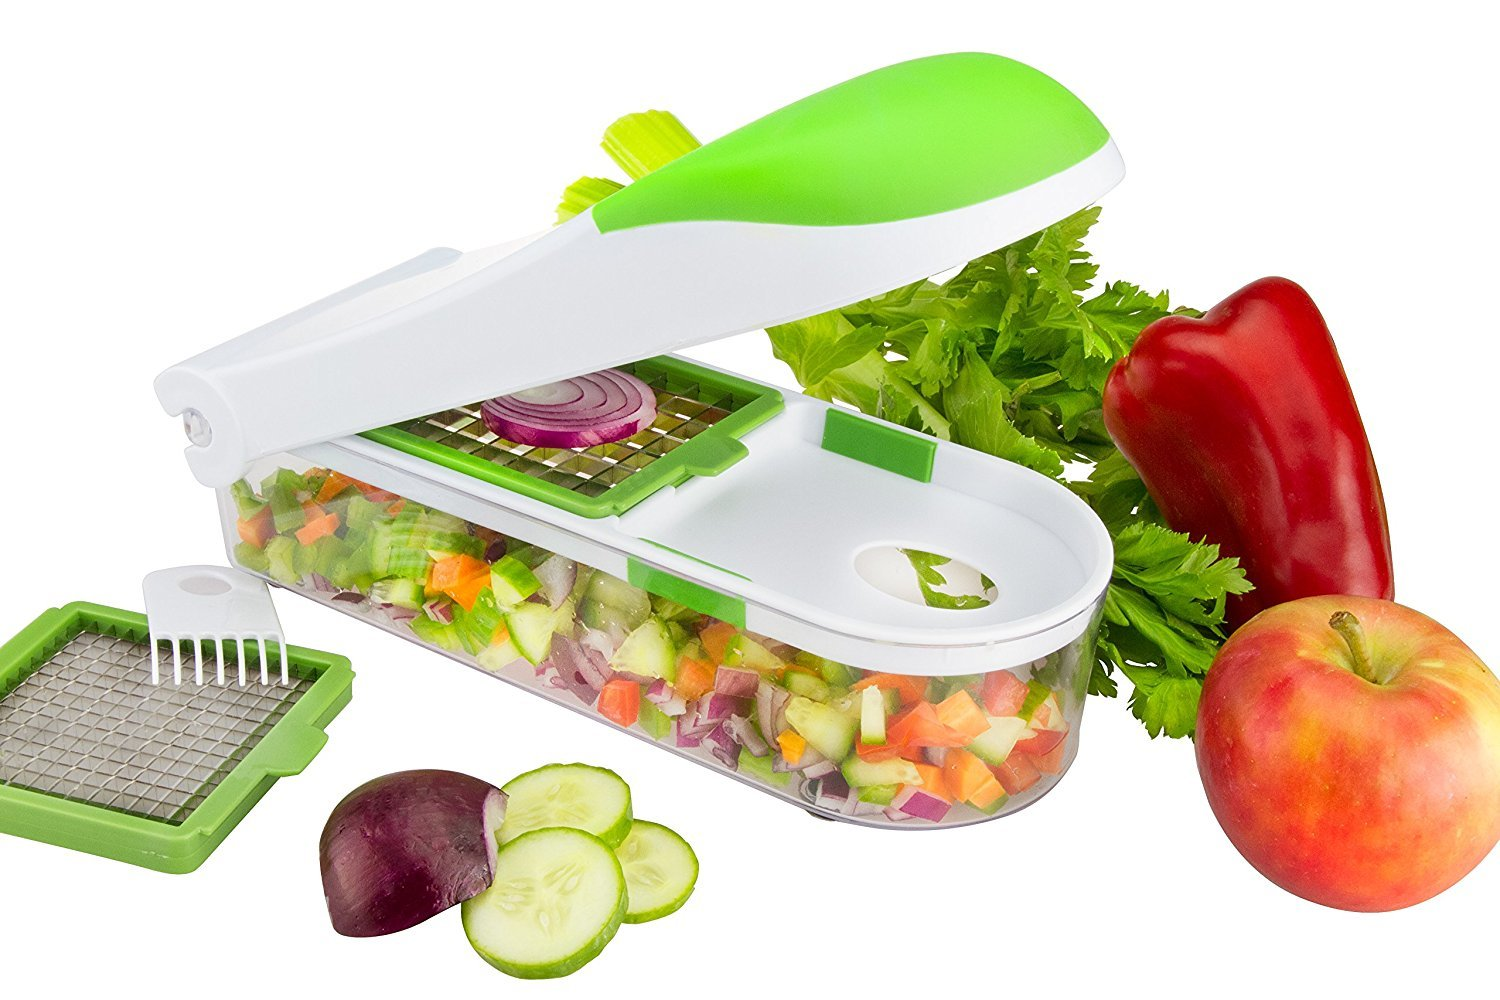 Food Chopper Vegetable Slicer Dicer Onion Chopper Fruit and Cheese Cutter 3 Interchangeable Safe Blades Food Container & Cleaning Brush - By Nuovva